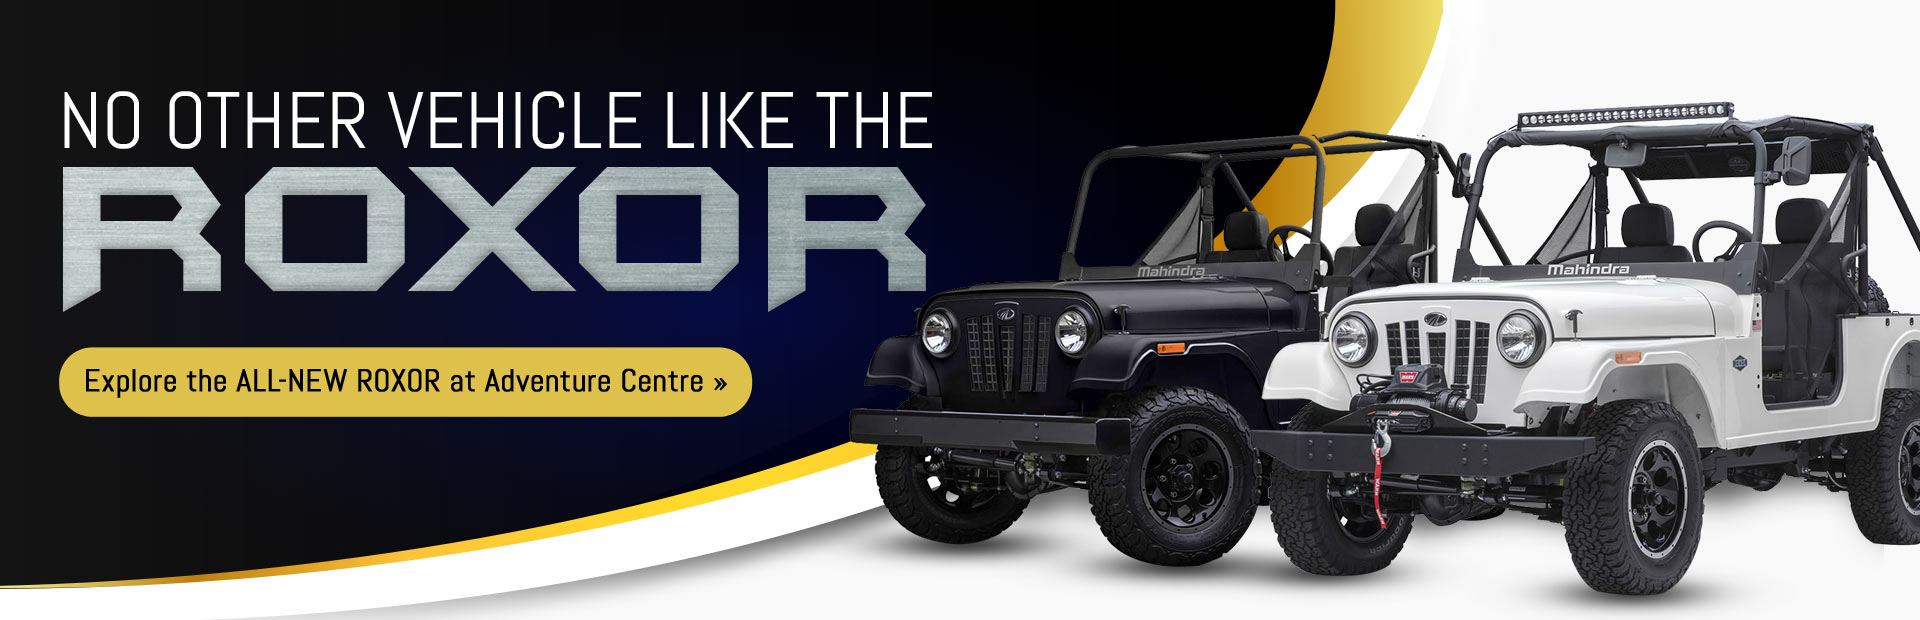 Explore the all-new Mahindra ROXOR at Adventure Centre!